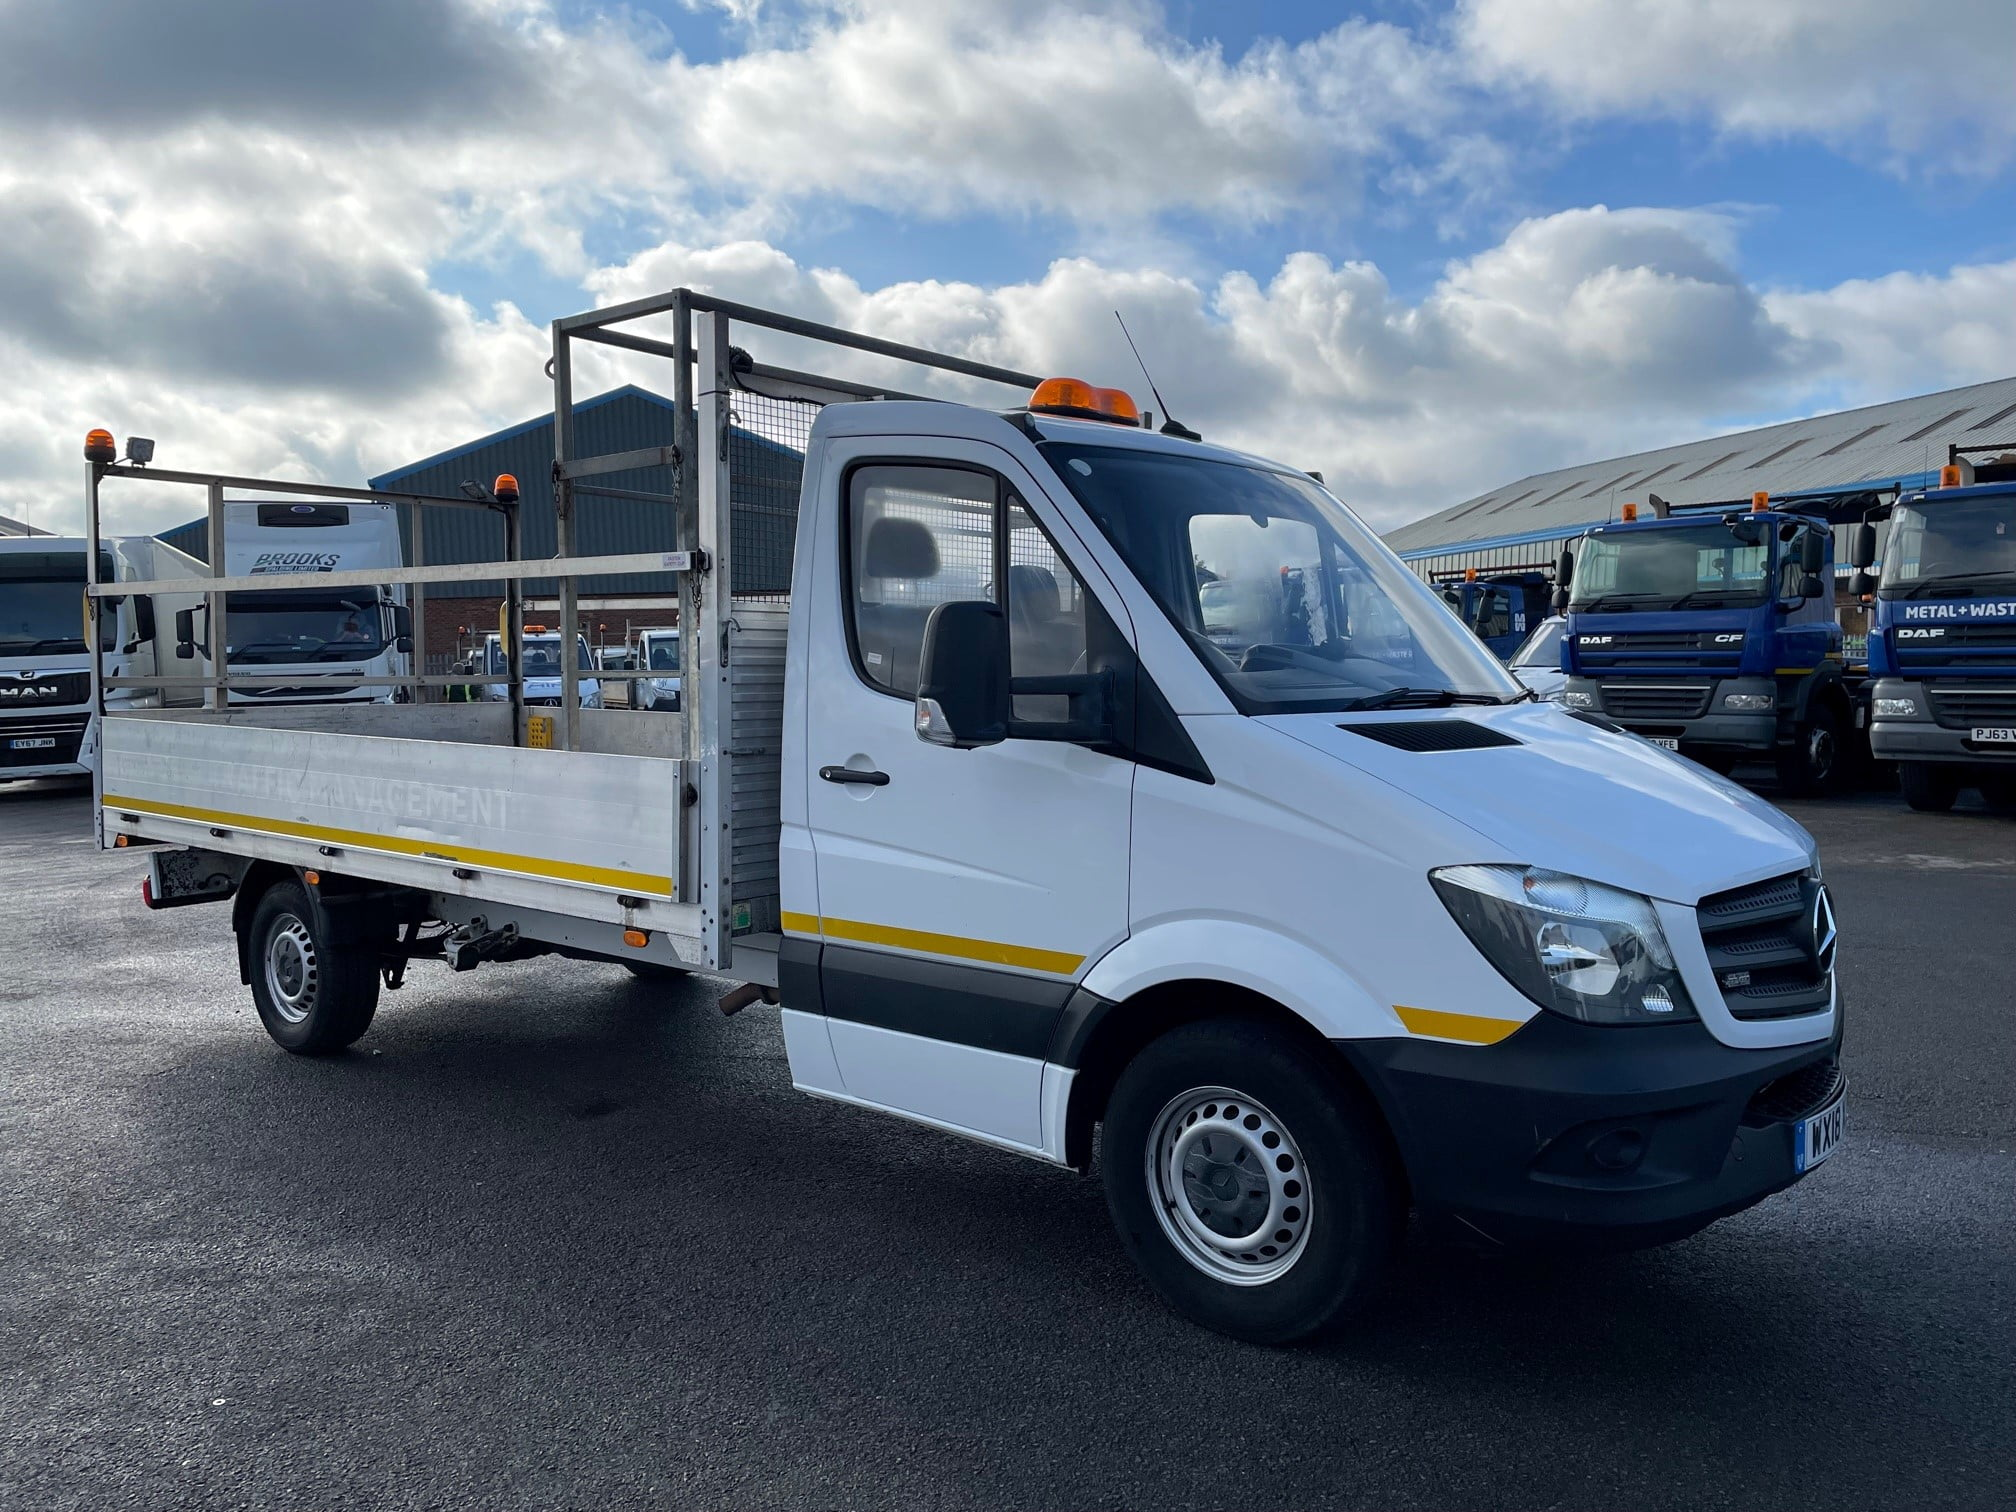 2018 Mercedes Sprinter, 3.5 Tonne, Dropside, Manual Gearbox, Day Cab, Low Mileage, Electric Windows, Steering Wheel Controls, Warranty & Finance Options Available.